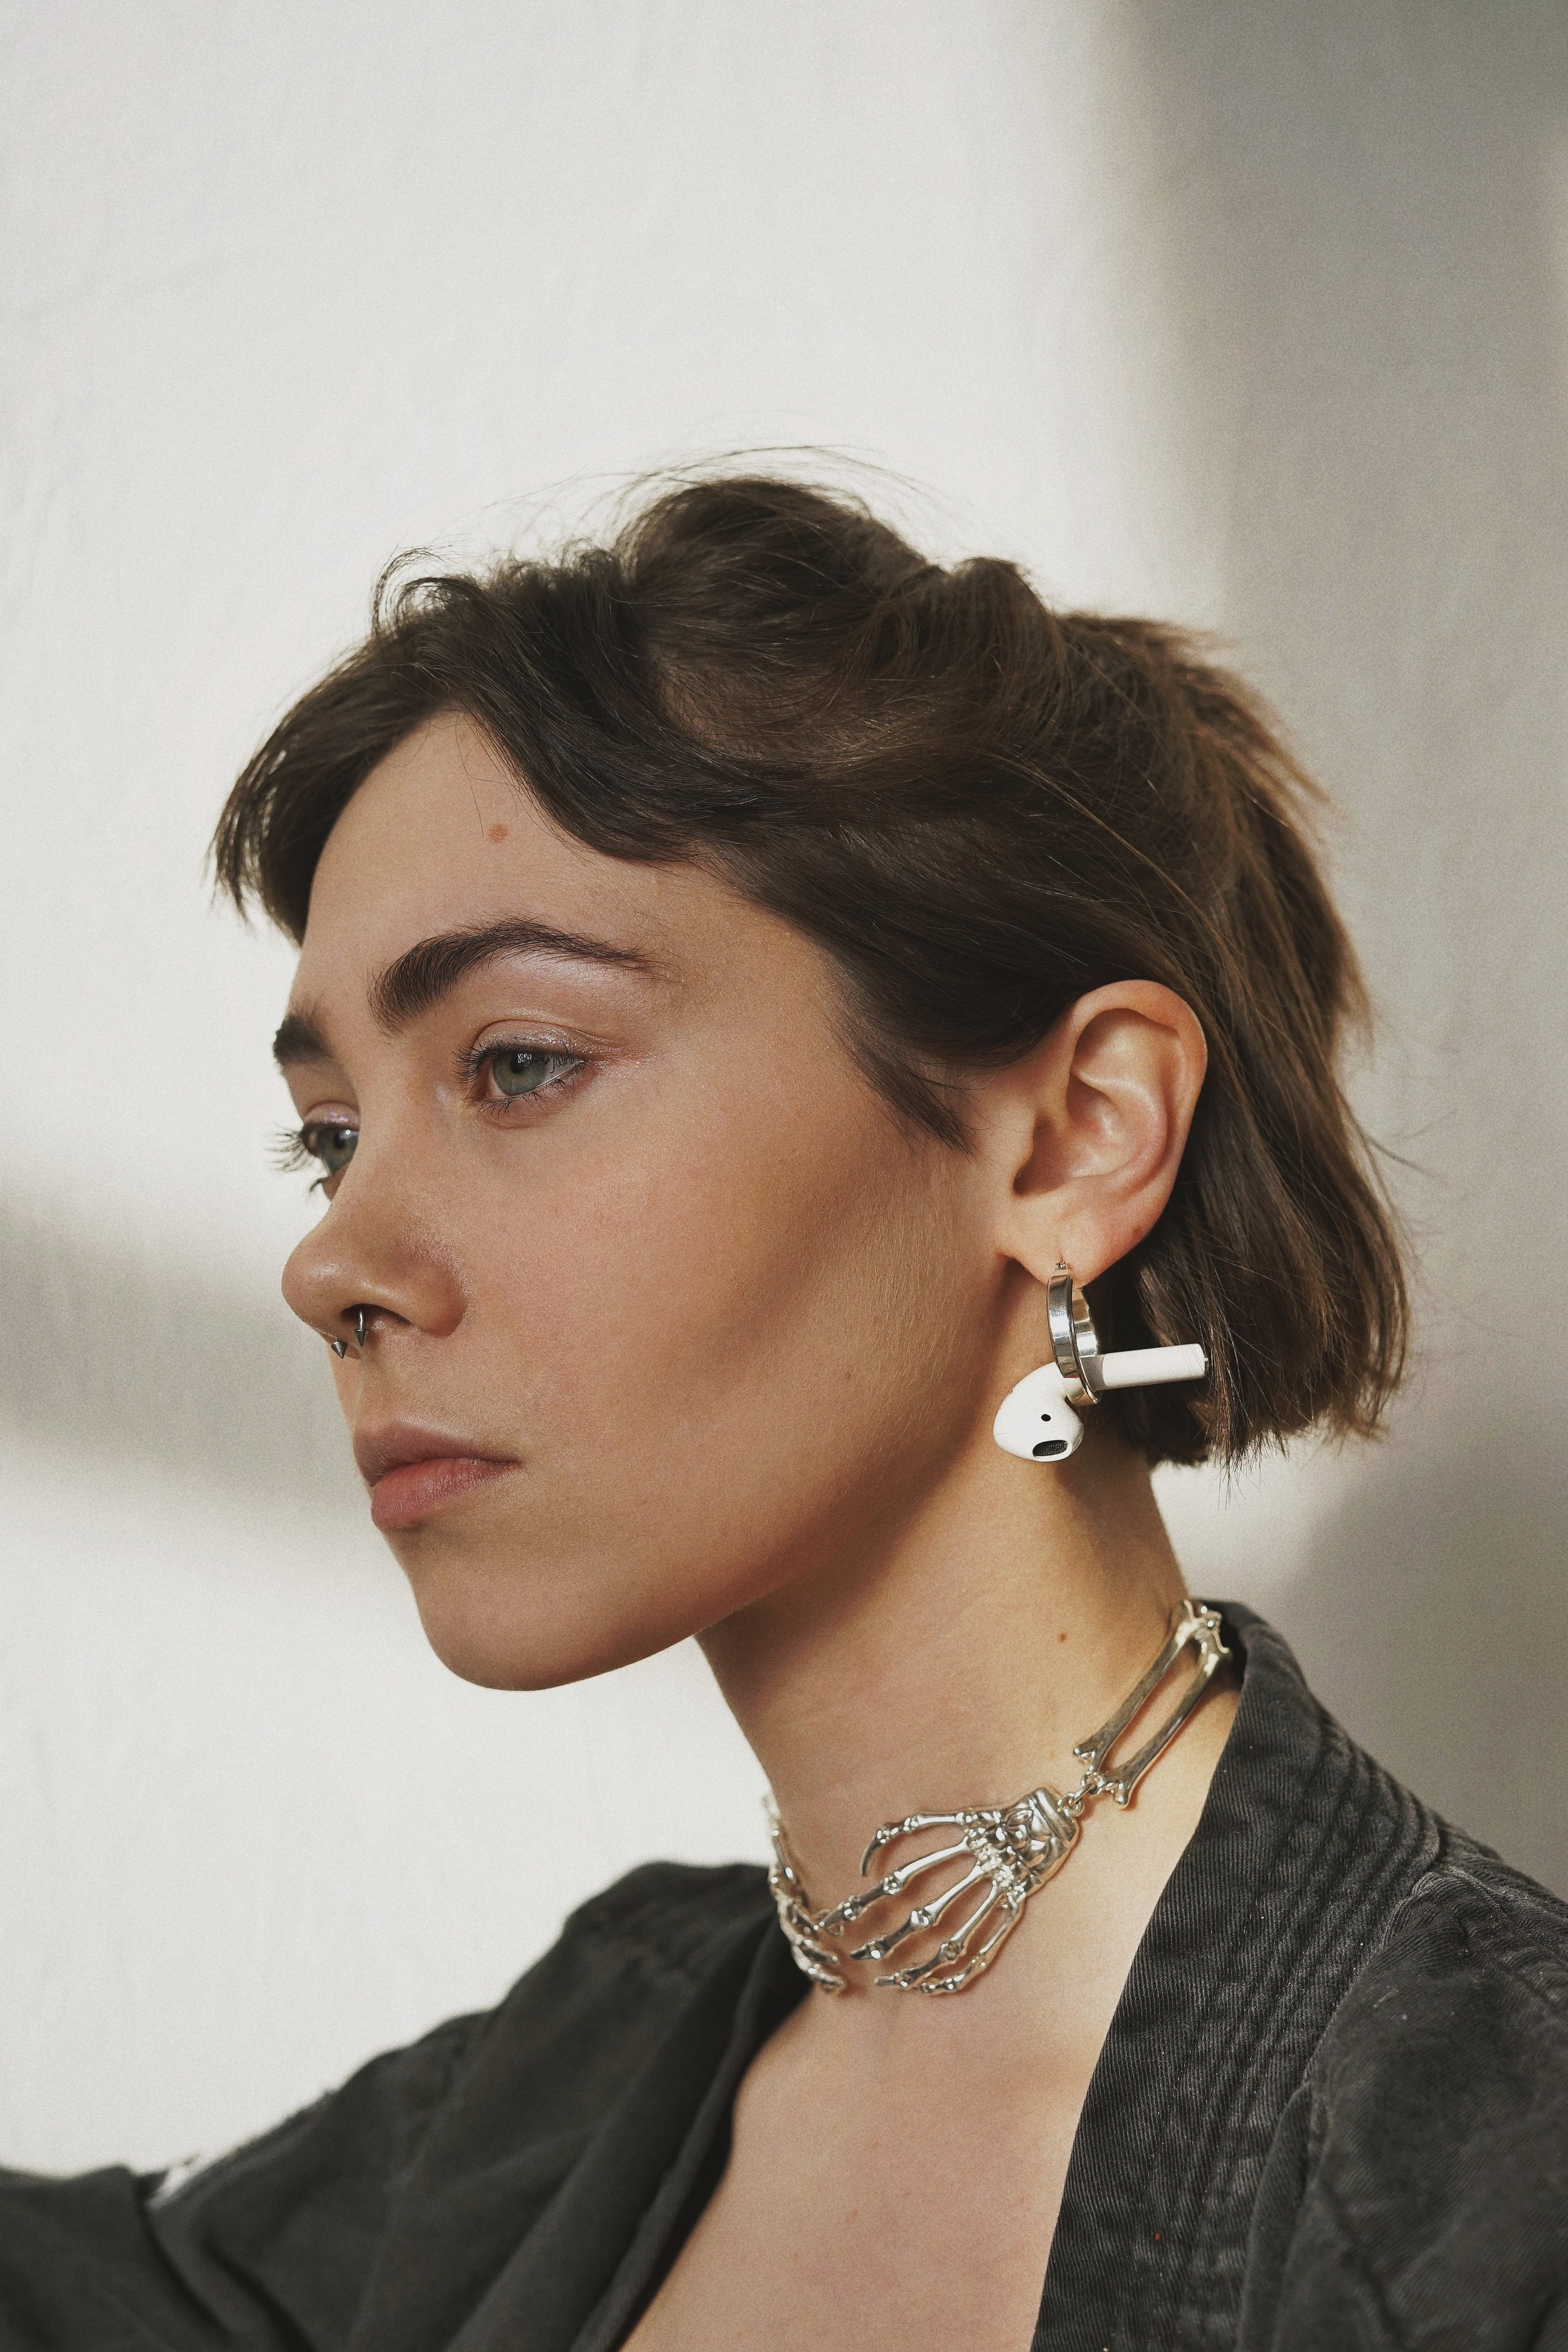 hearables-woman-airpods-earrings-pierced-beetle-moment-podcast.jpg